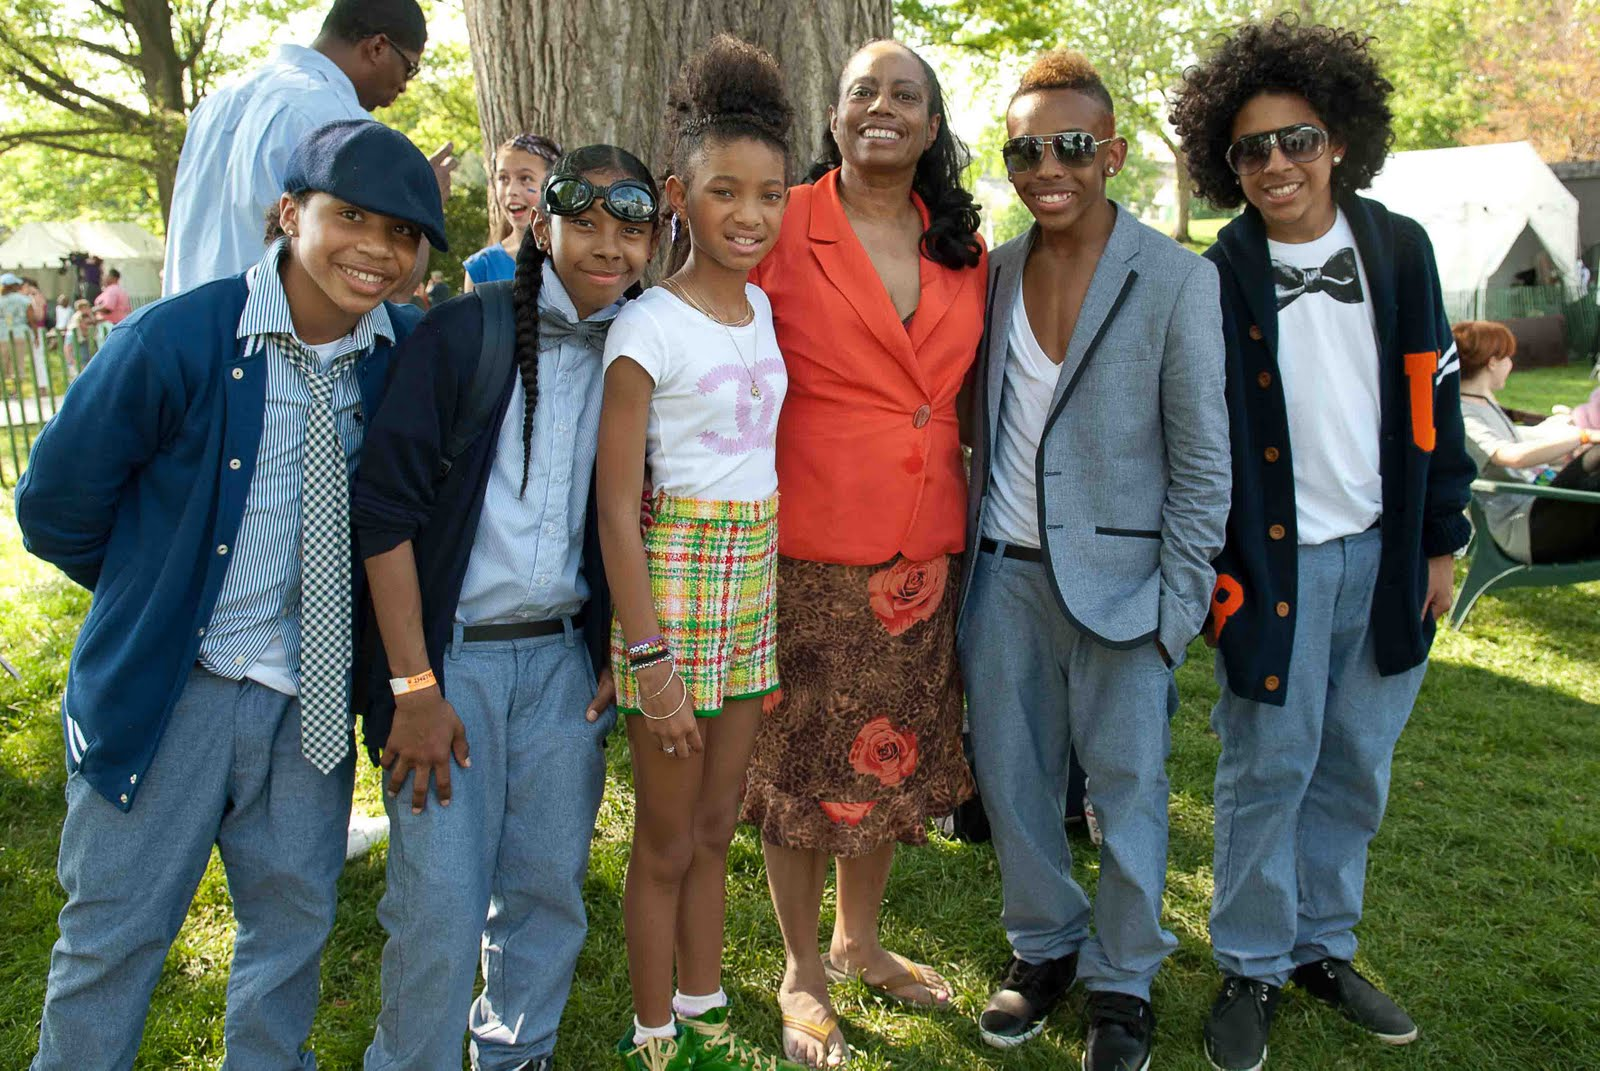 Did Princeton from mindless behavior kiss Willow Smith